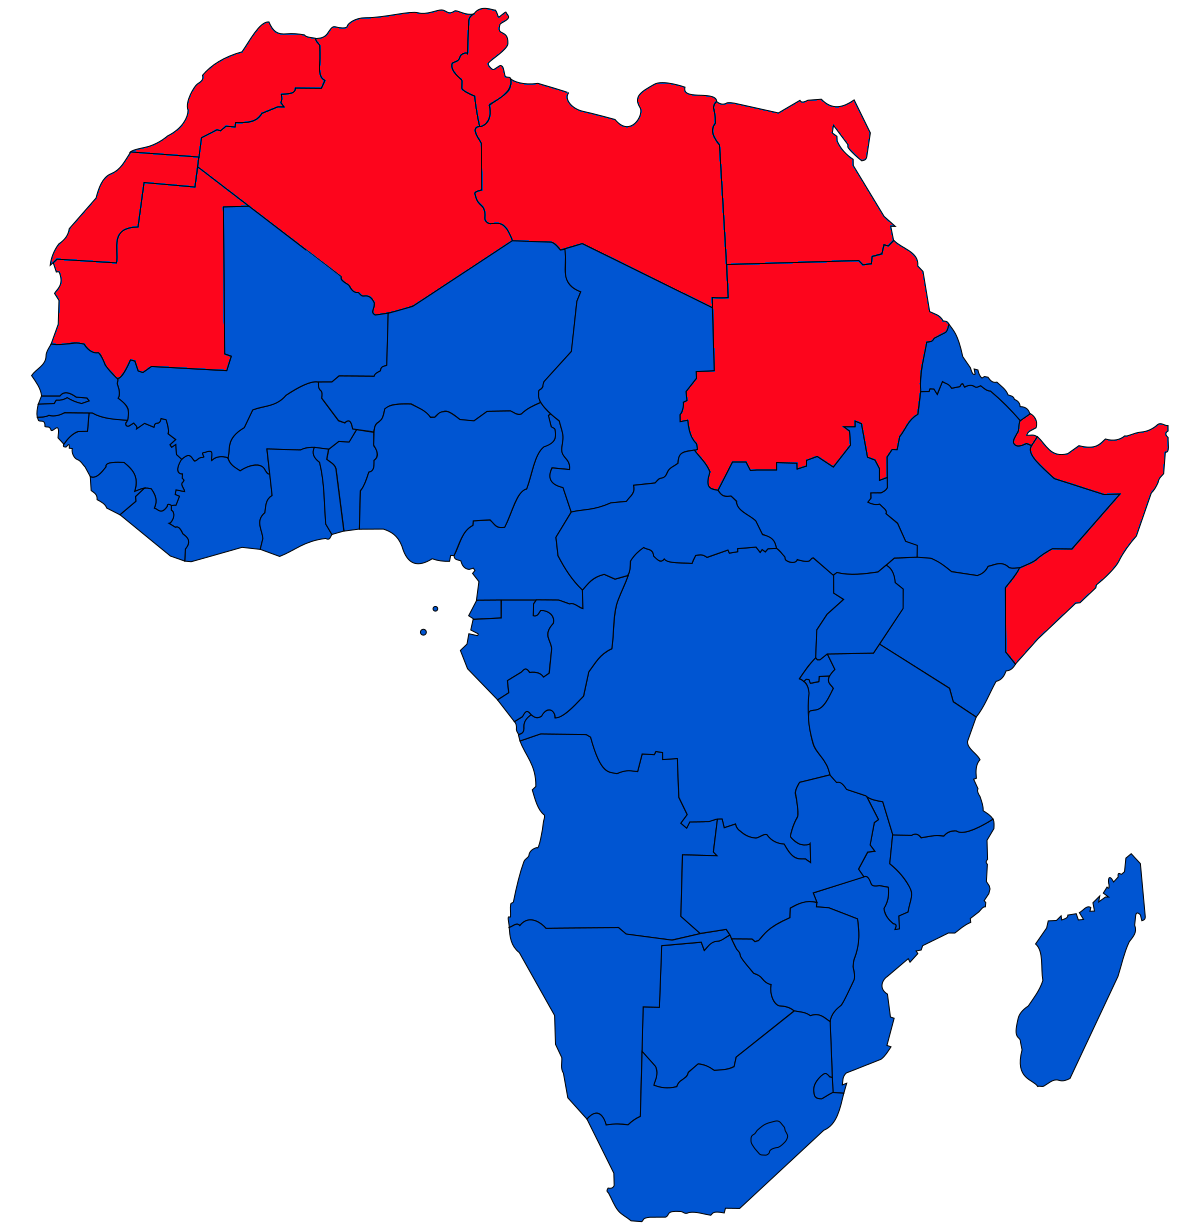 File:Africa map.png   Wikimedia Commons